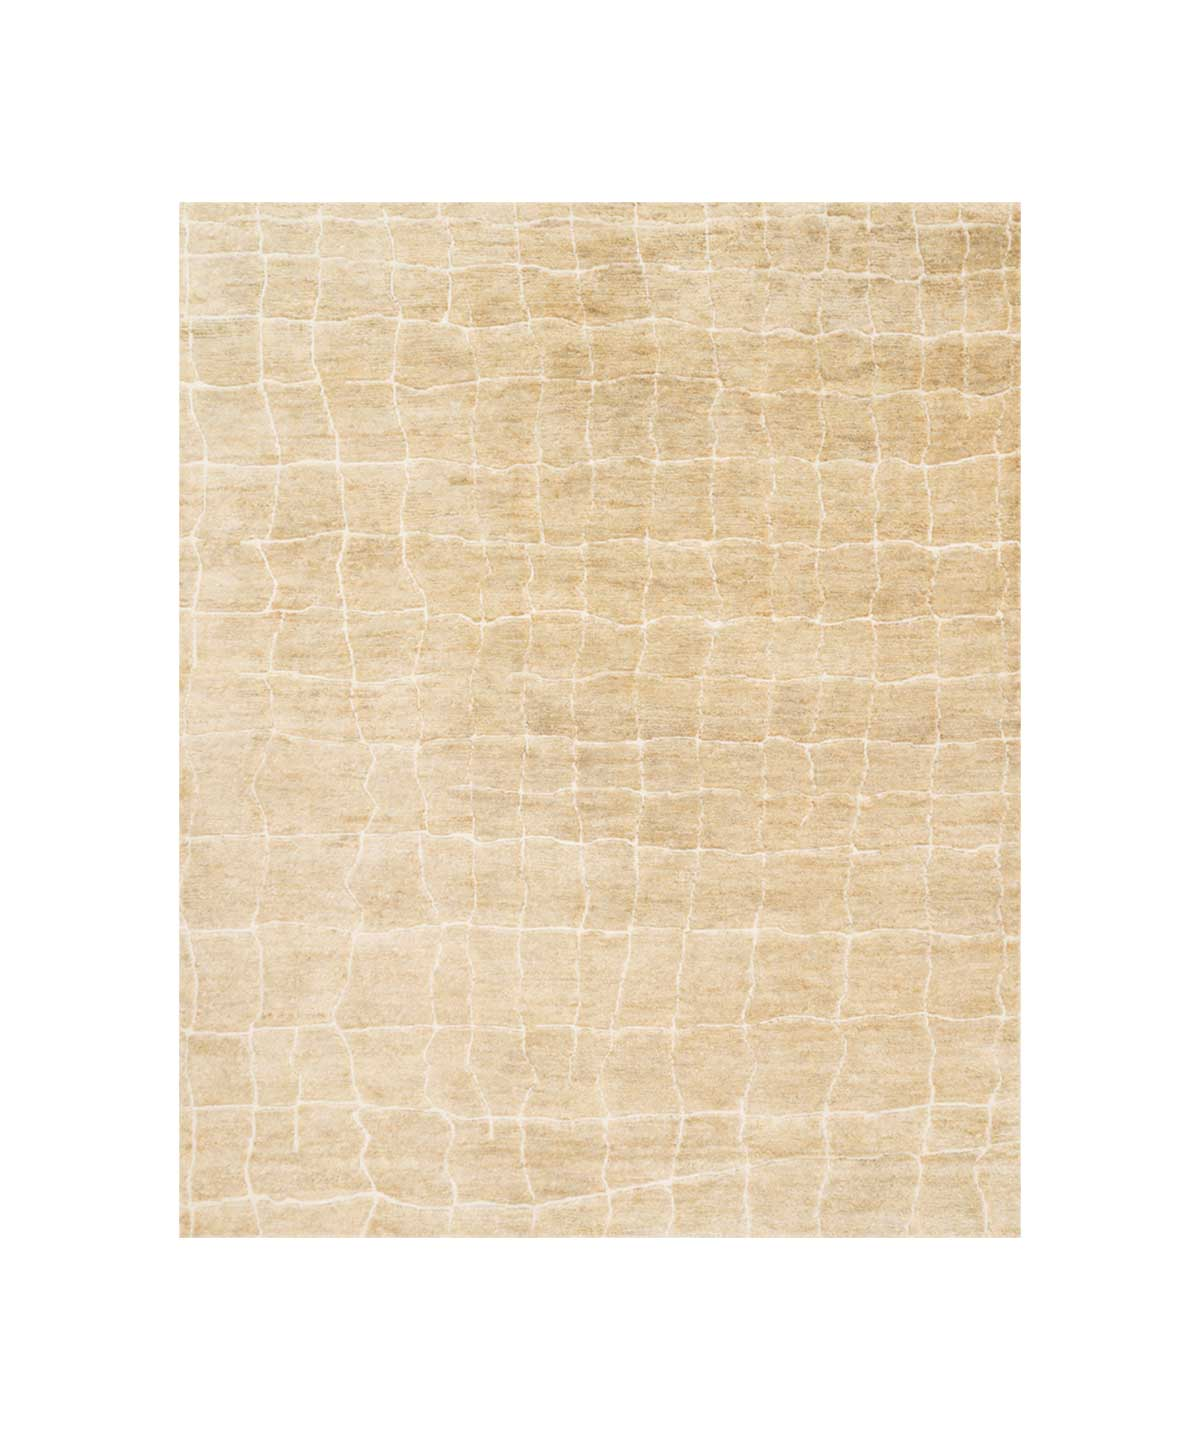 Sahara Rug in Birch